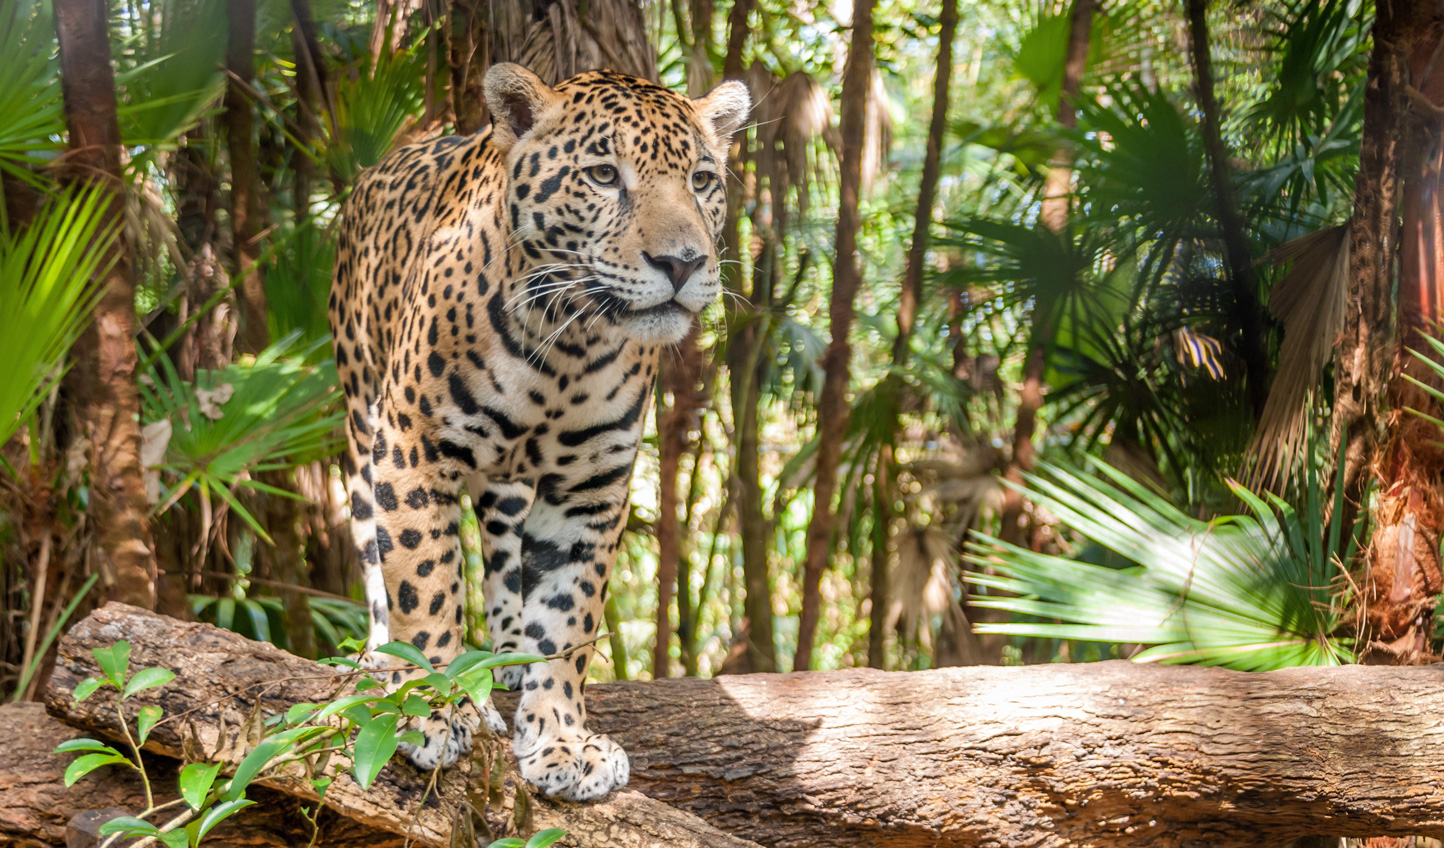 Go in search of elusive jaguars at Chaa Creek